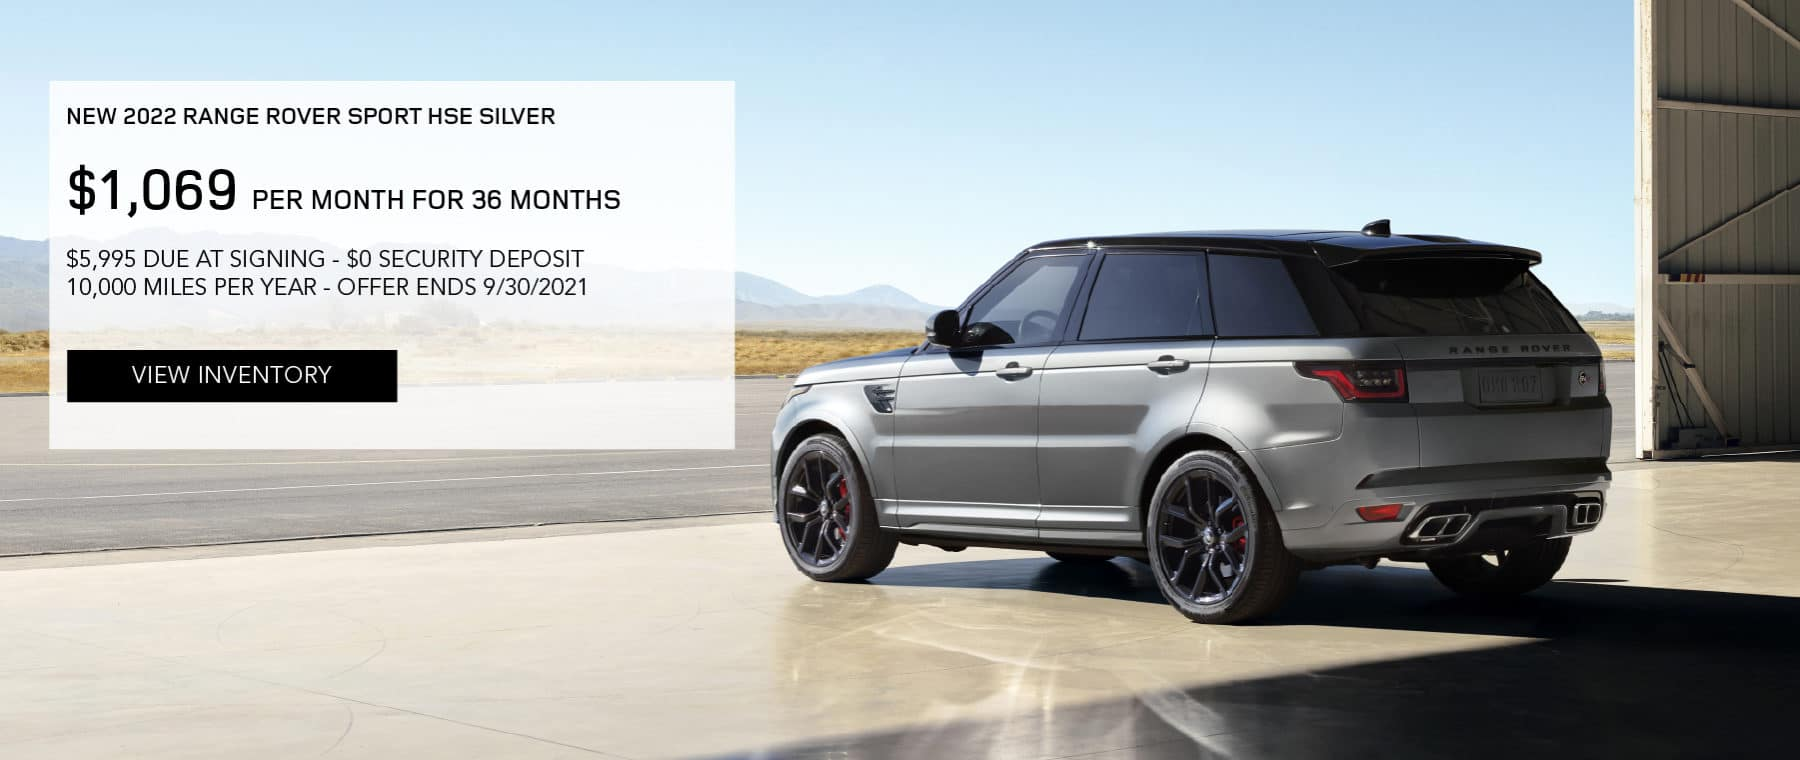 NEW 2022 RANGE ROVER SPORT HSE SILVER. $1,069 PER MONTH. 36 MONTH LEASE TERM. $5,995 CASH DUE AT SIGNING. $0 SECURITY DEPOSIT. 10,000 MILES PER YEAR. EXCLUDES RETAILER FEES, TAXES, TITLE AND REGISTRATION FEES, PROCESSING FEE AND ANY EMISSION TESTING CHARGE. OFFER ENDS 9/30/2021. VIEW INVENTORY. SILVER RANGE ROVER SPORT PARKED IN AIRPLANE HANGER.